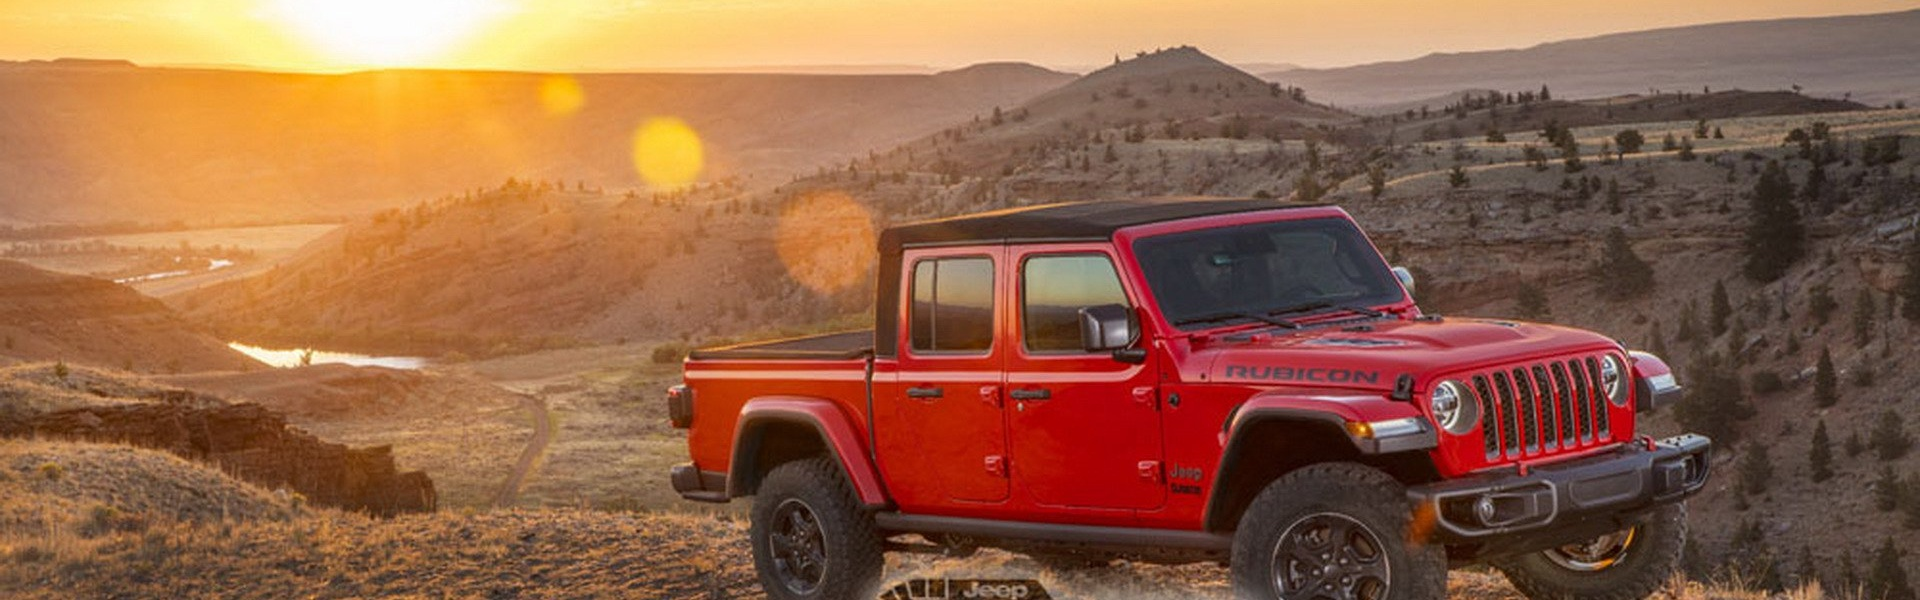 2020-jeep-gladiator-jt-pickup-2.jpg